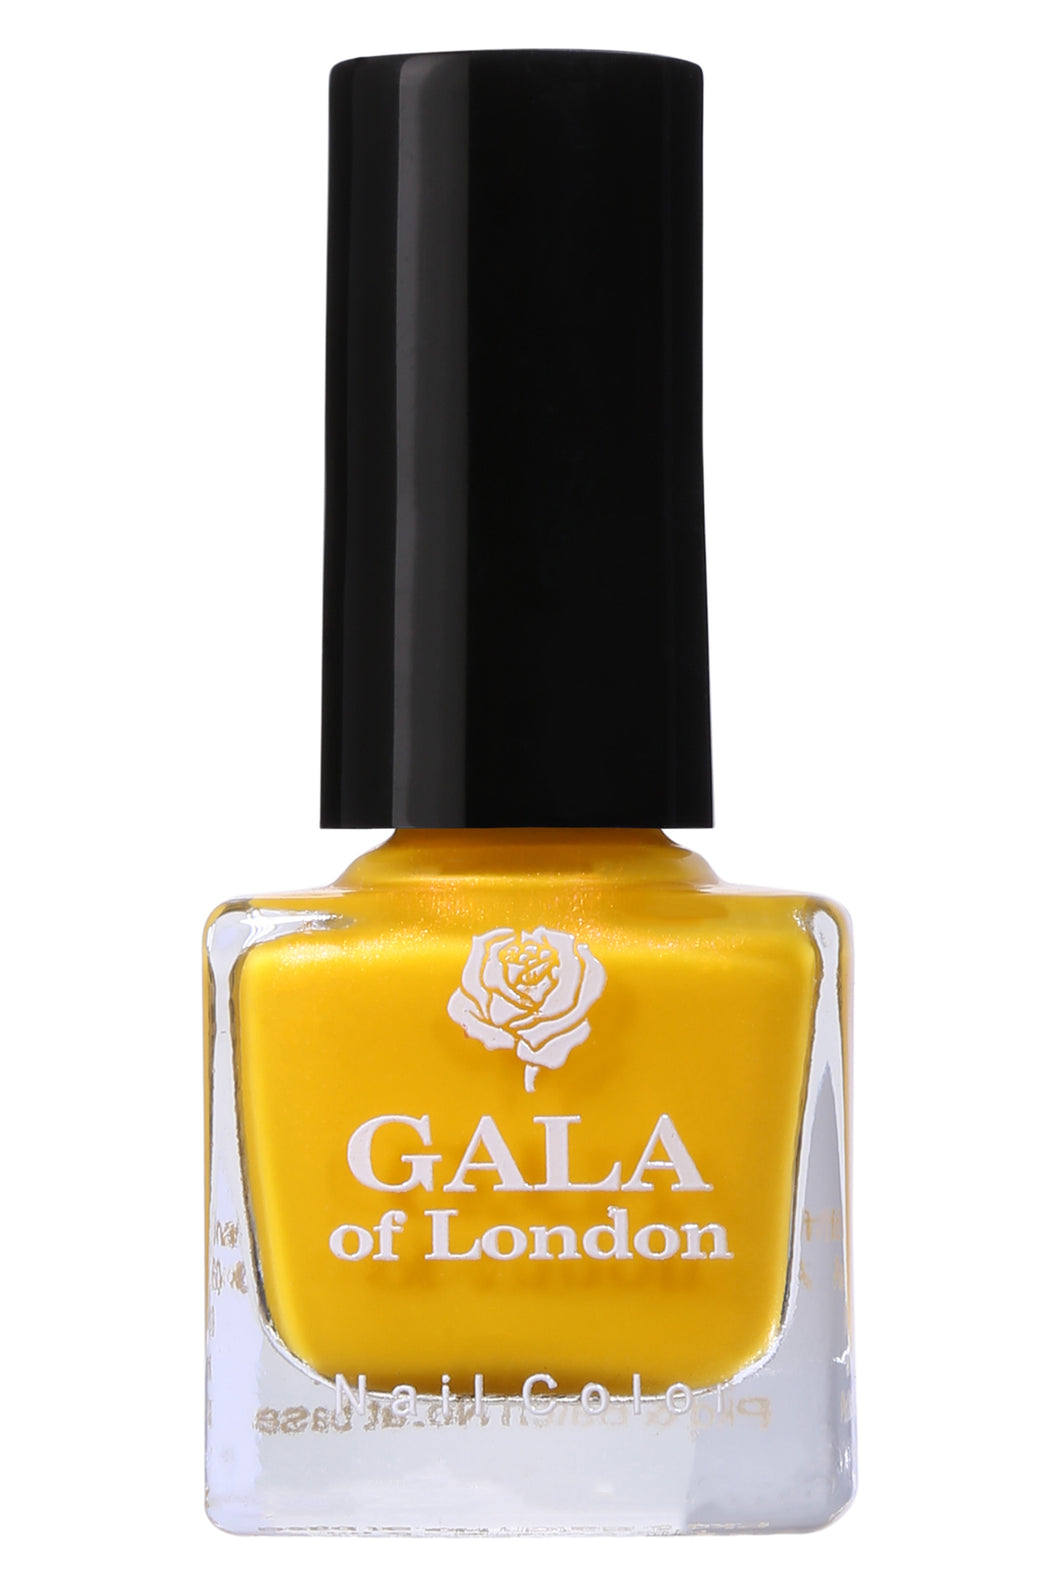 Gala of London S Series Nail Polish - Yellow Glossy S36